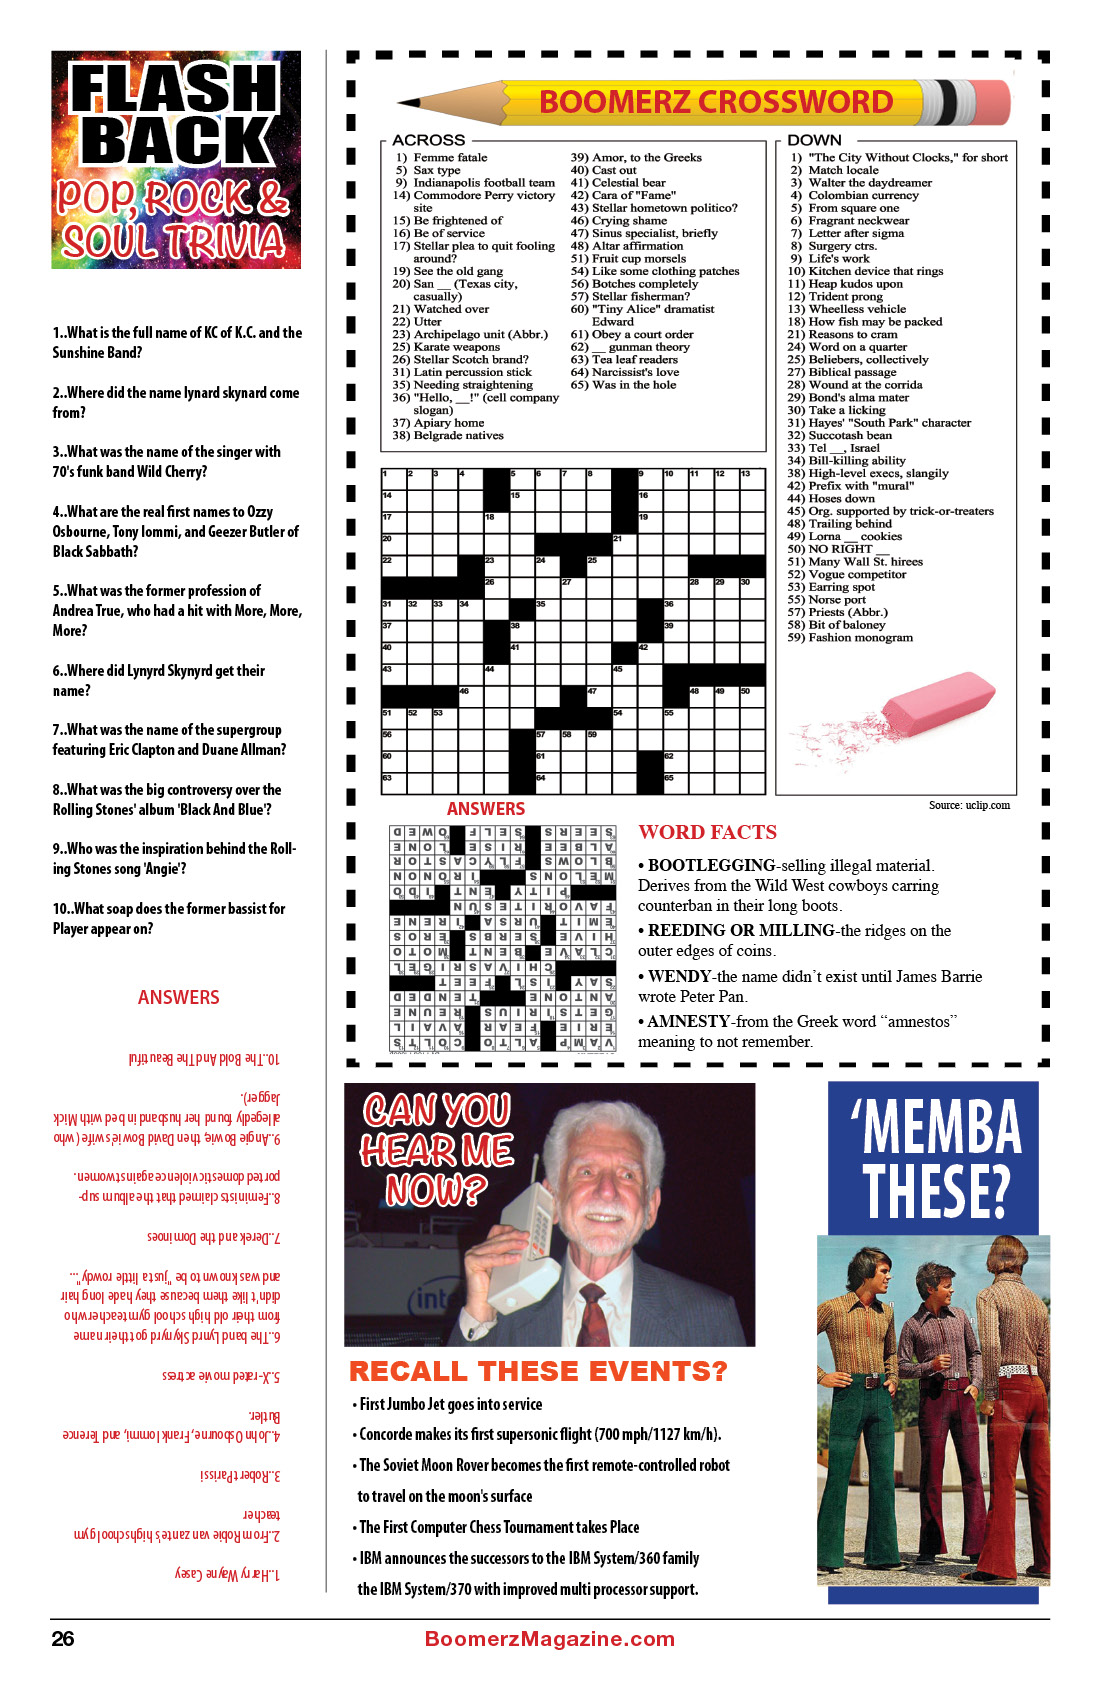 2018 October Boomerz-Magazine Page 26 Flash-Back-Pop-Rock-&-Soul-Trivia-Crossword